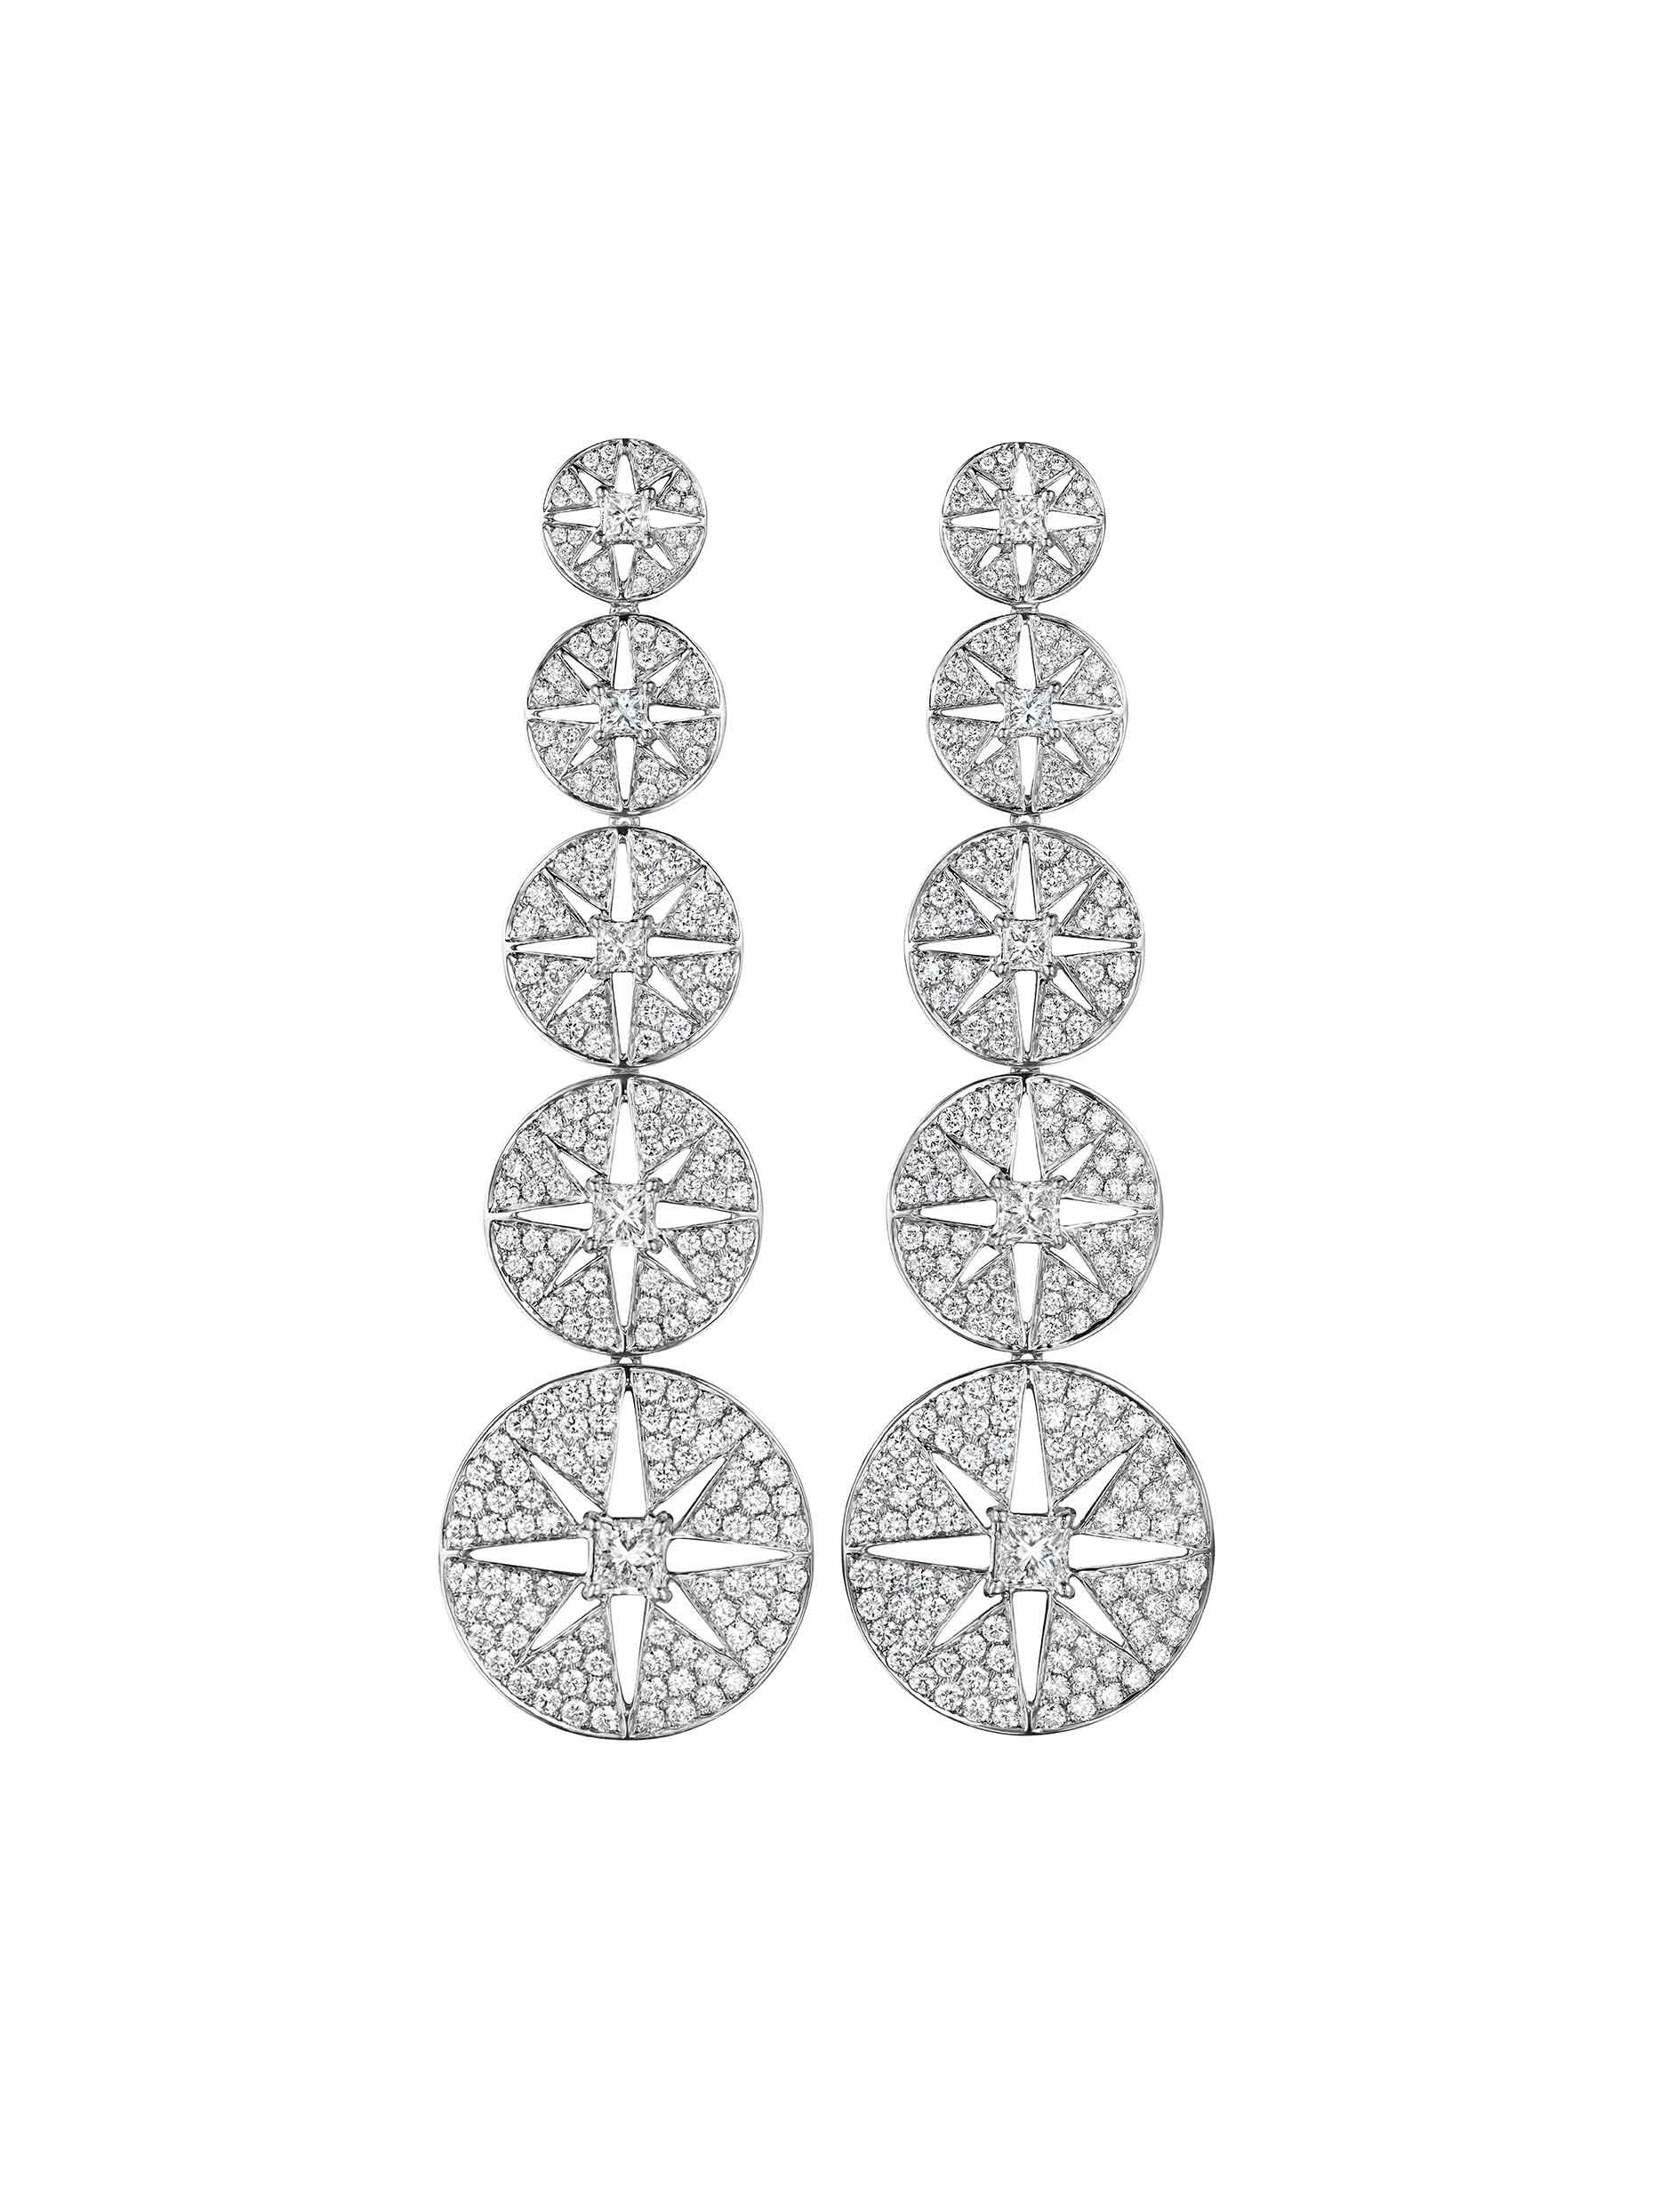 Starburst Diamond Drop Earrings